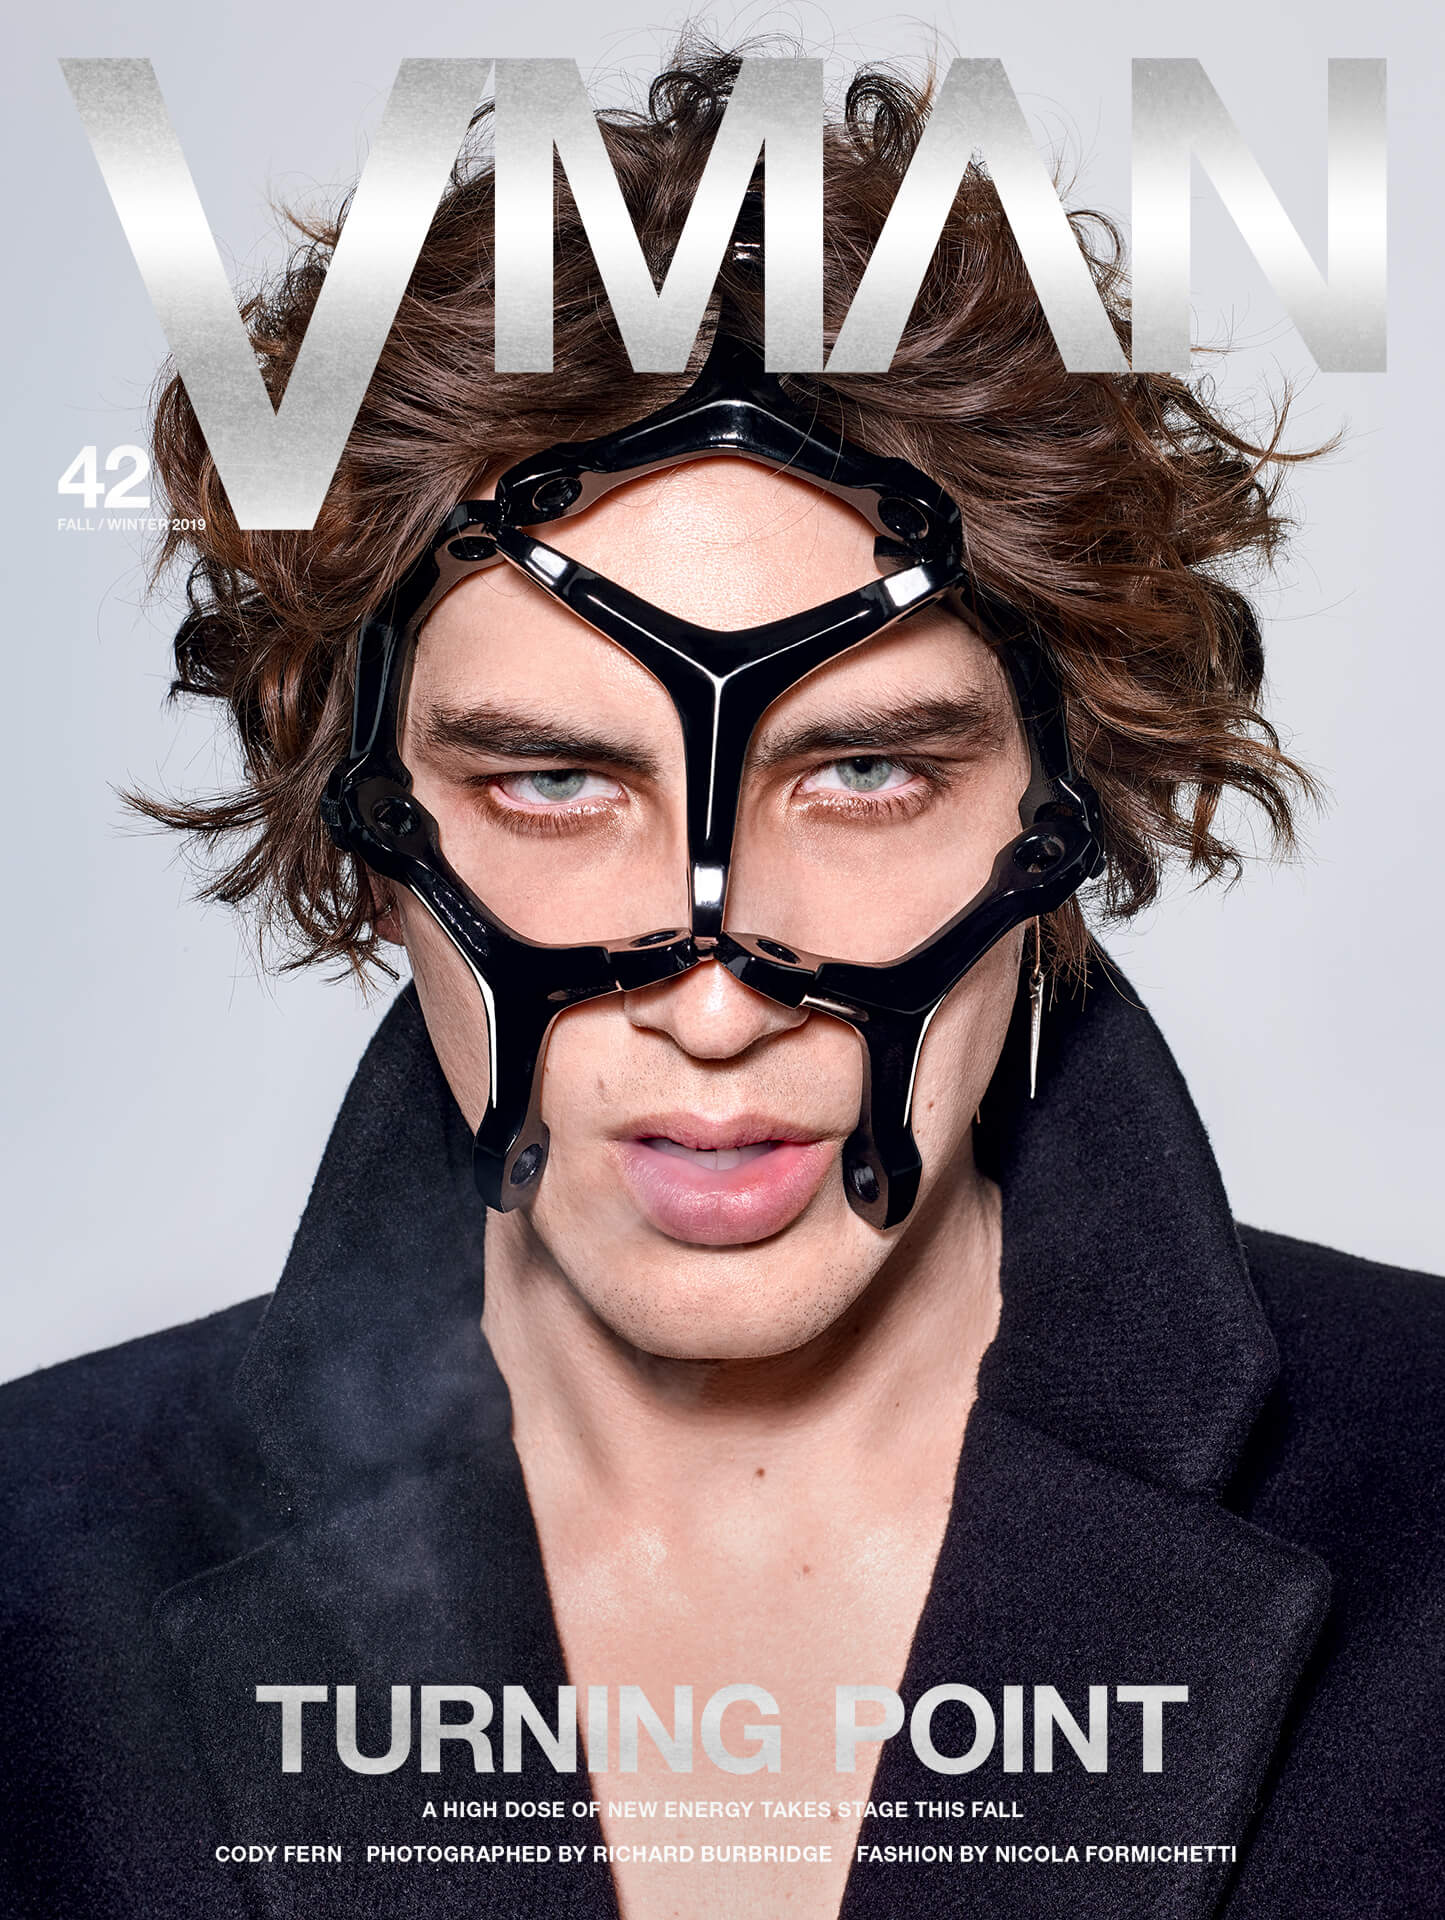 Cody Fern covers VMAN Issue 42 (Fall/Winter 2019)